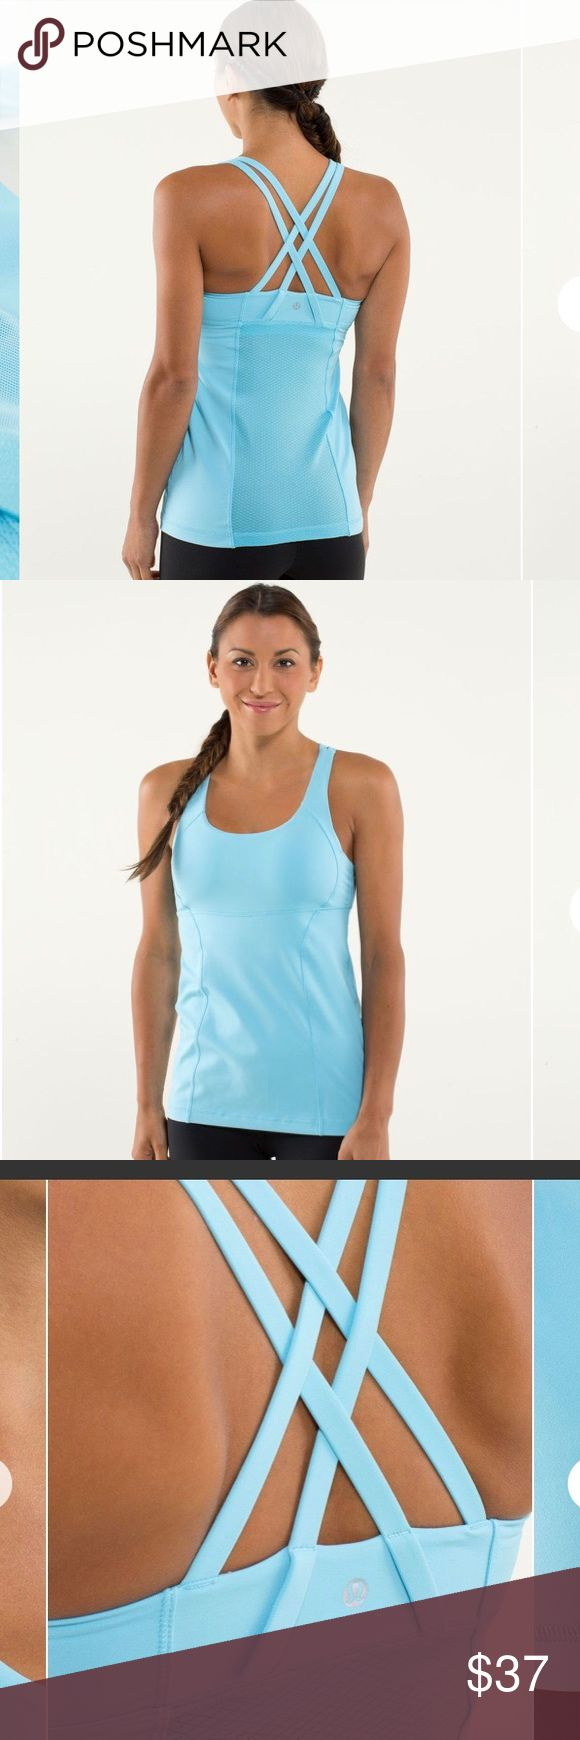 Lululemon Energy Tank Blue Moon Strappy Size 6? Lululemon Womens Energy Tank in Blue Moon Yoga, Running, Workout  Size: 6? See Measurements in Pictures Design: Padded Shelf Bra Material: Mesh, Power Luxtreme Condition: Excellent Pre-loved Condition! lululemon athletica Tops Tank Tops